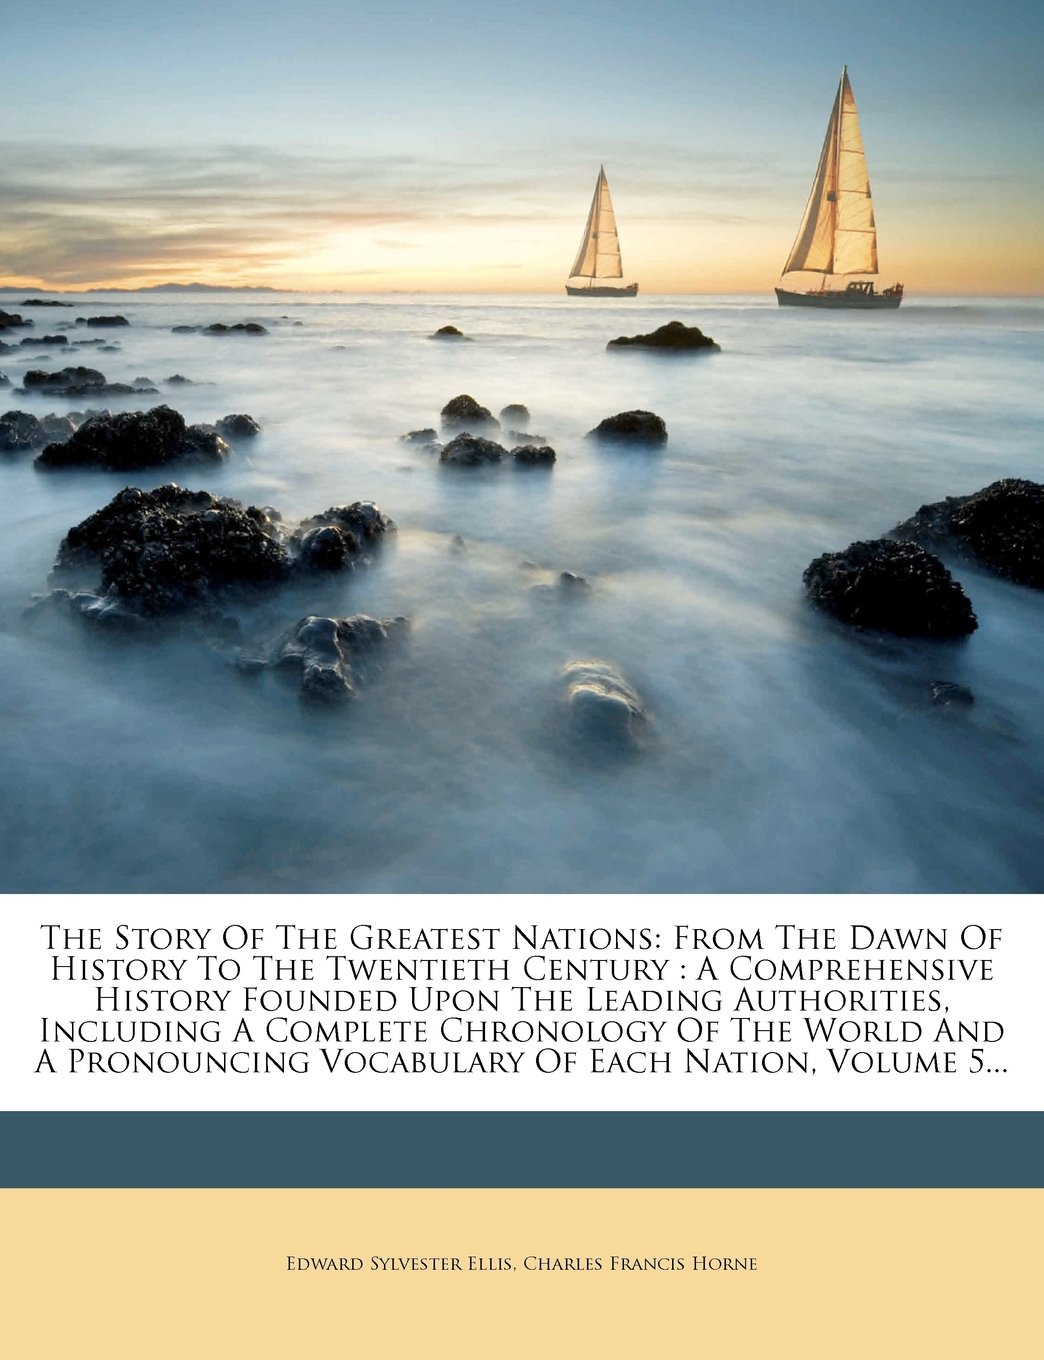 Download The Story Of The Greatest Nations: From The Dawn Of History To The Twentieth Century : A Comprehensive History Founded Upon The Leading Authorities, ... Vocabulary Of Each Nation, Volume 5... ebook